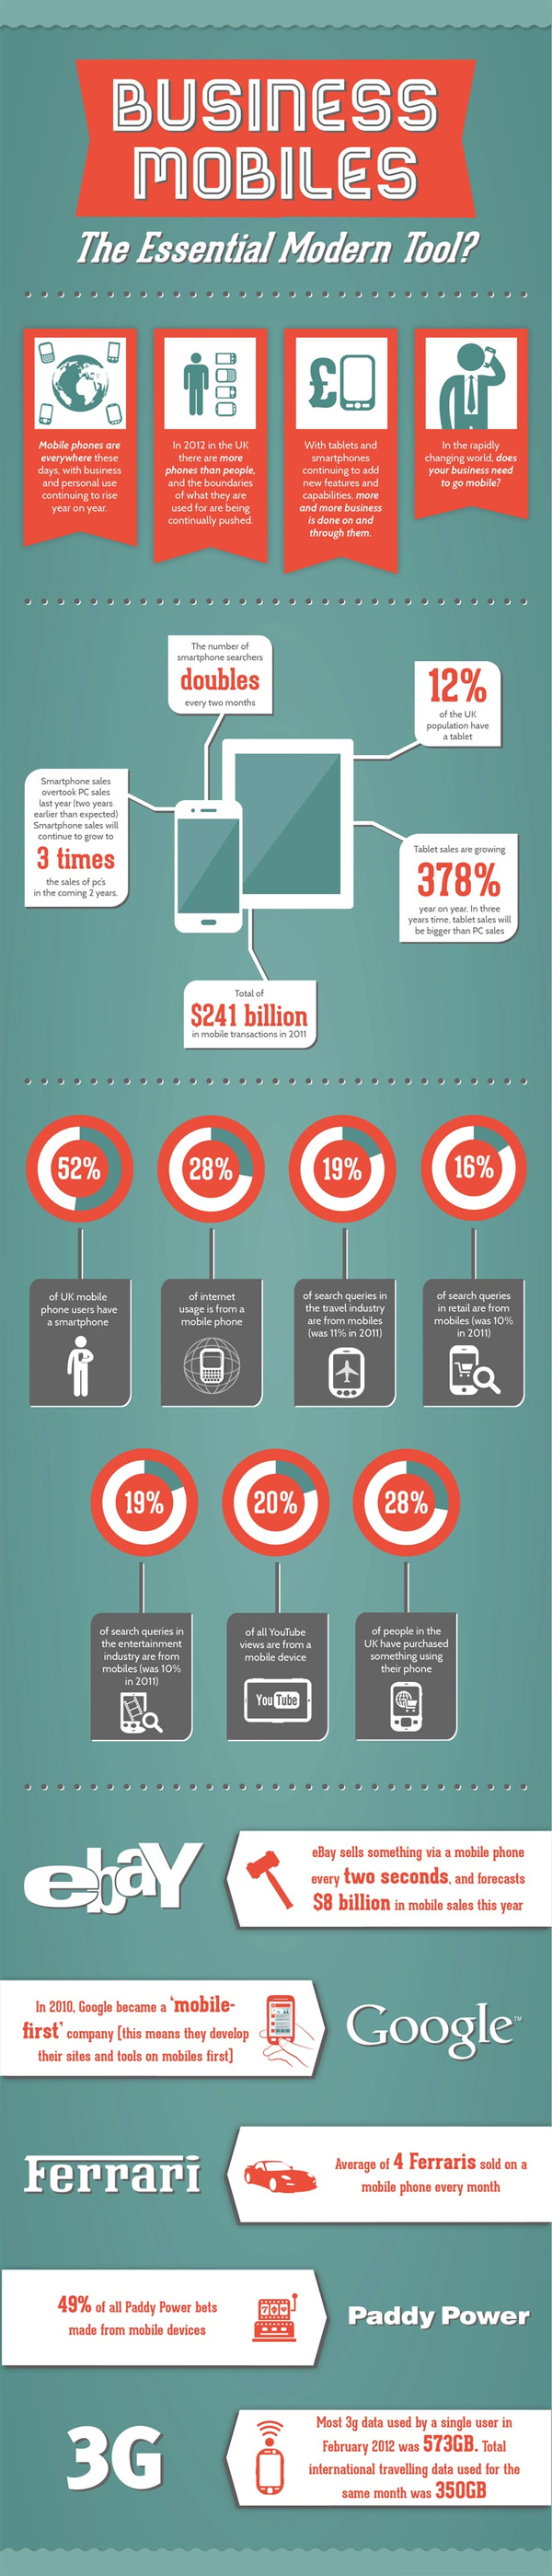 smartphone facs infographic